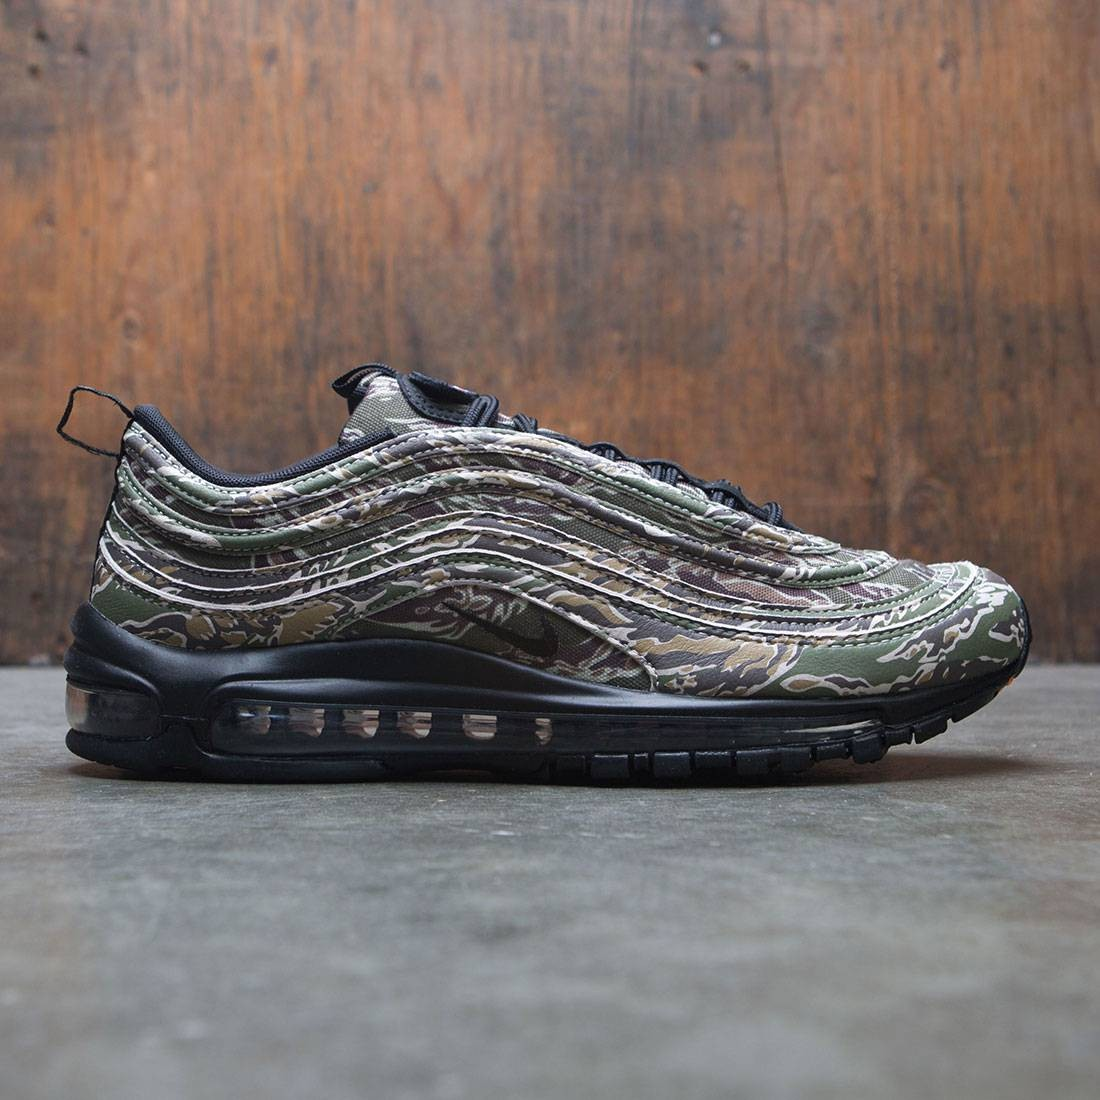 Nike Air Max 97 Premium QS USA Camo Medium OliveBlack